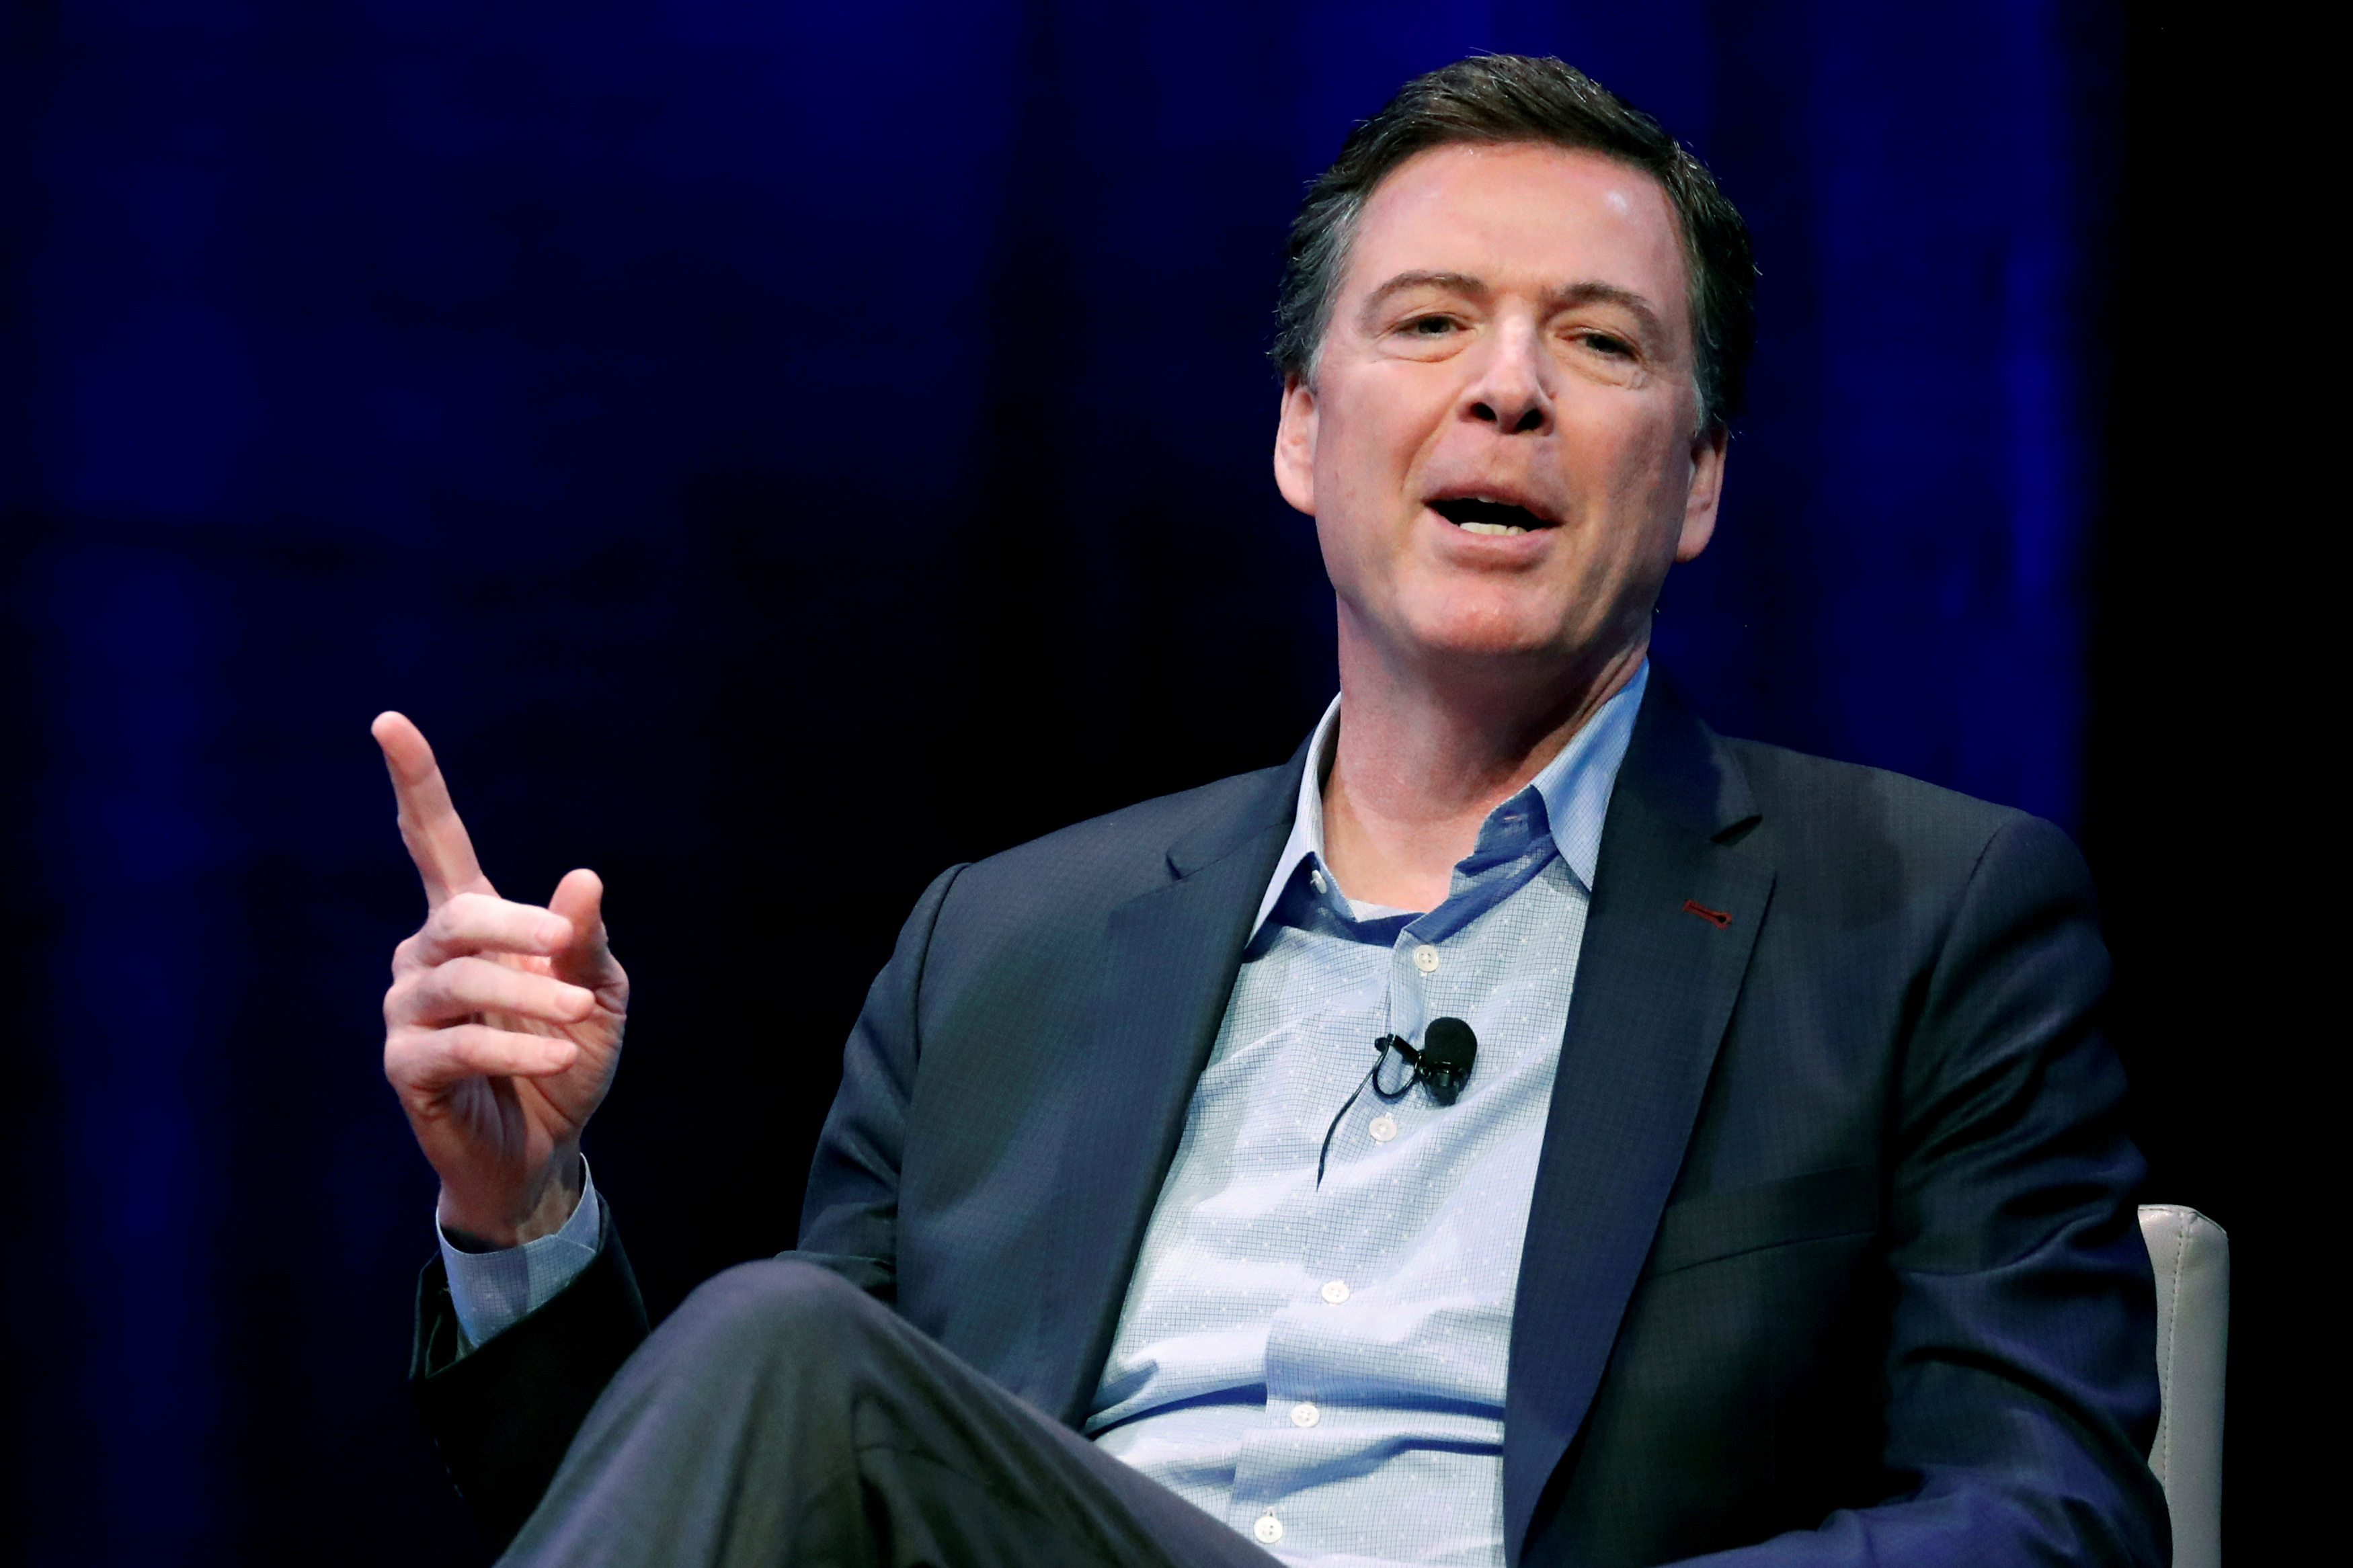 FILE - Former FBI director James Comey speaks during an interview with Axios Executive Editor Mike Allen at George Washington University in Washington, April 30, 2018.